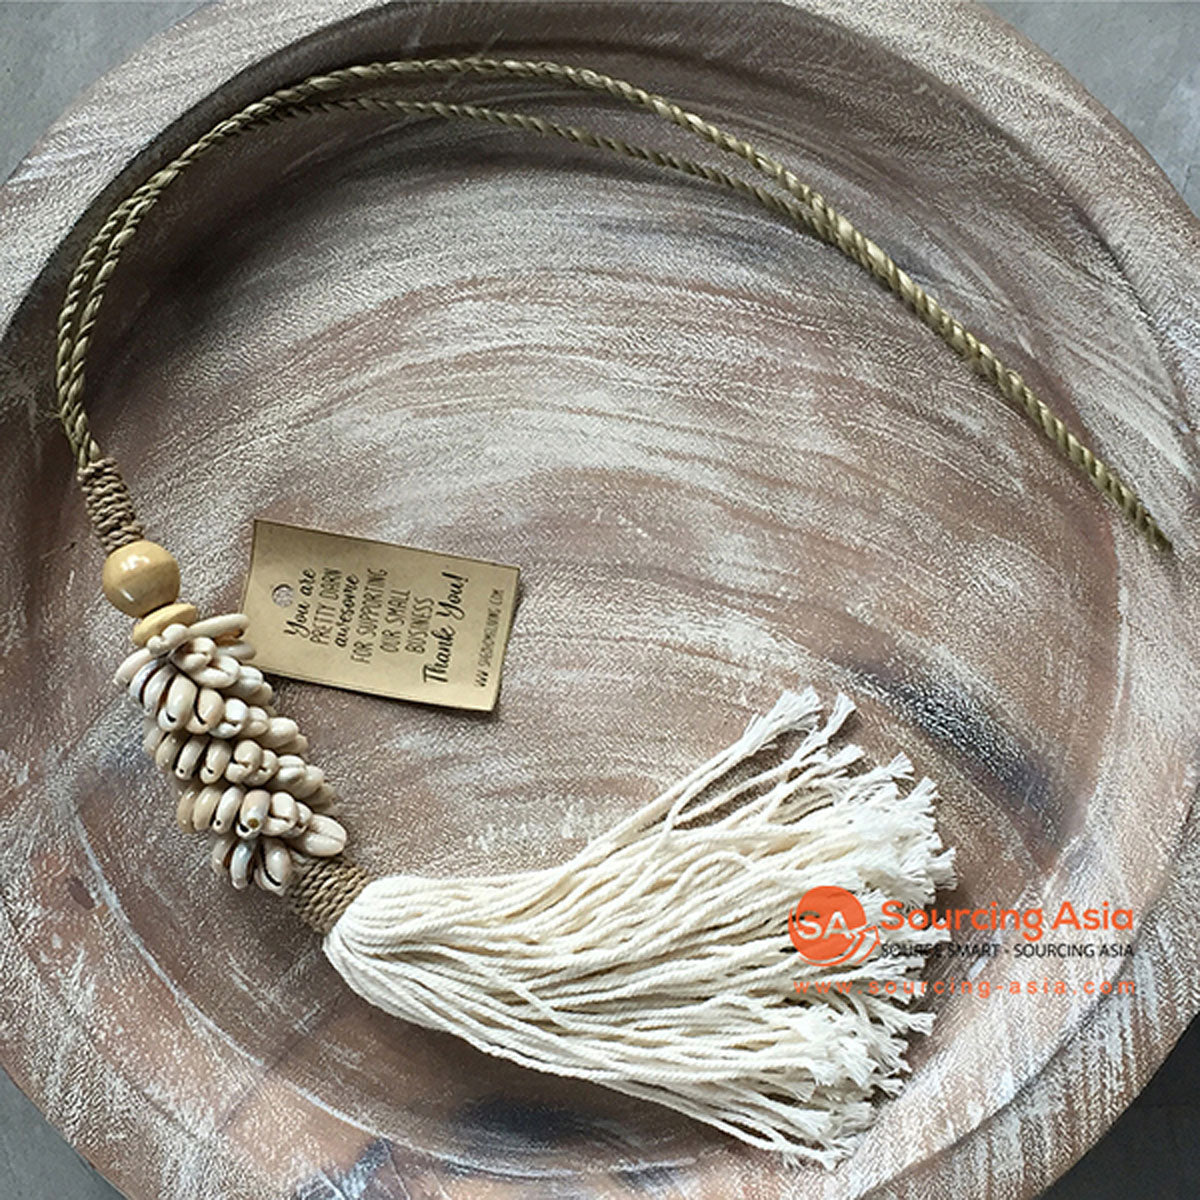 SHL047-11 NATURAL COWRIE SHELL DECORATIVE TASSEL WITH MACRAME YARN